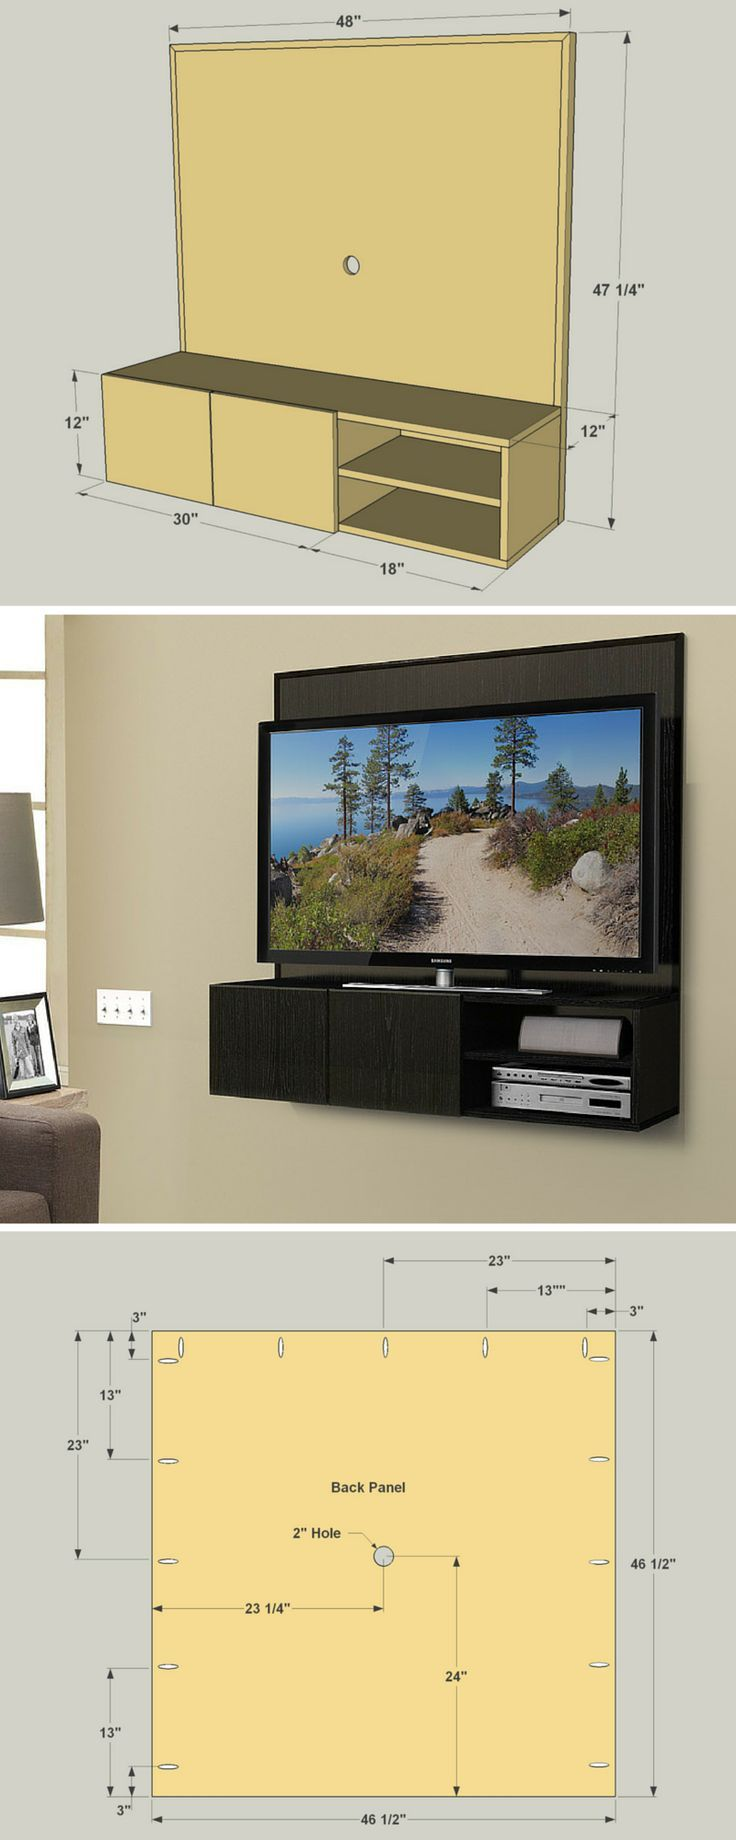 """This wall-mounted media cabinet takes a new approach to the traditional """"entertainment center."""" It hangs on the wall, allowing you to mount your TV to it, and then keep small media components on the shelves below. Wires hide behind the back panel. FREE PLANS at http://buildsomething.com"""